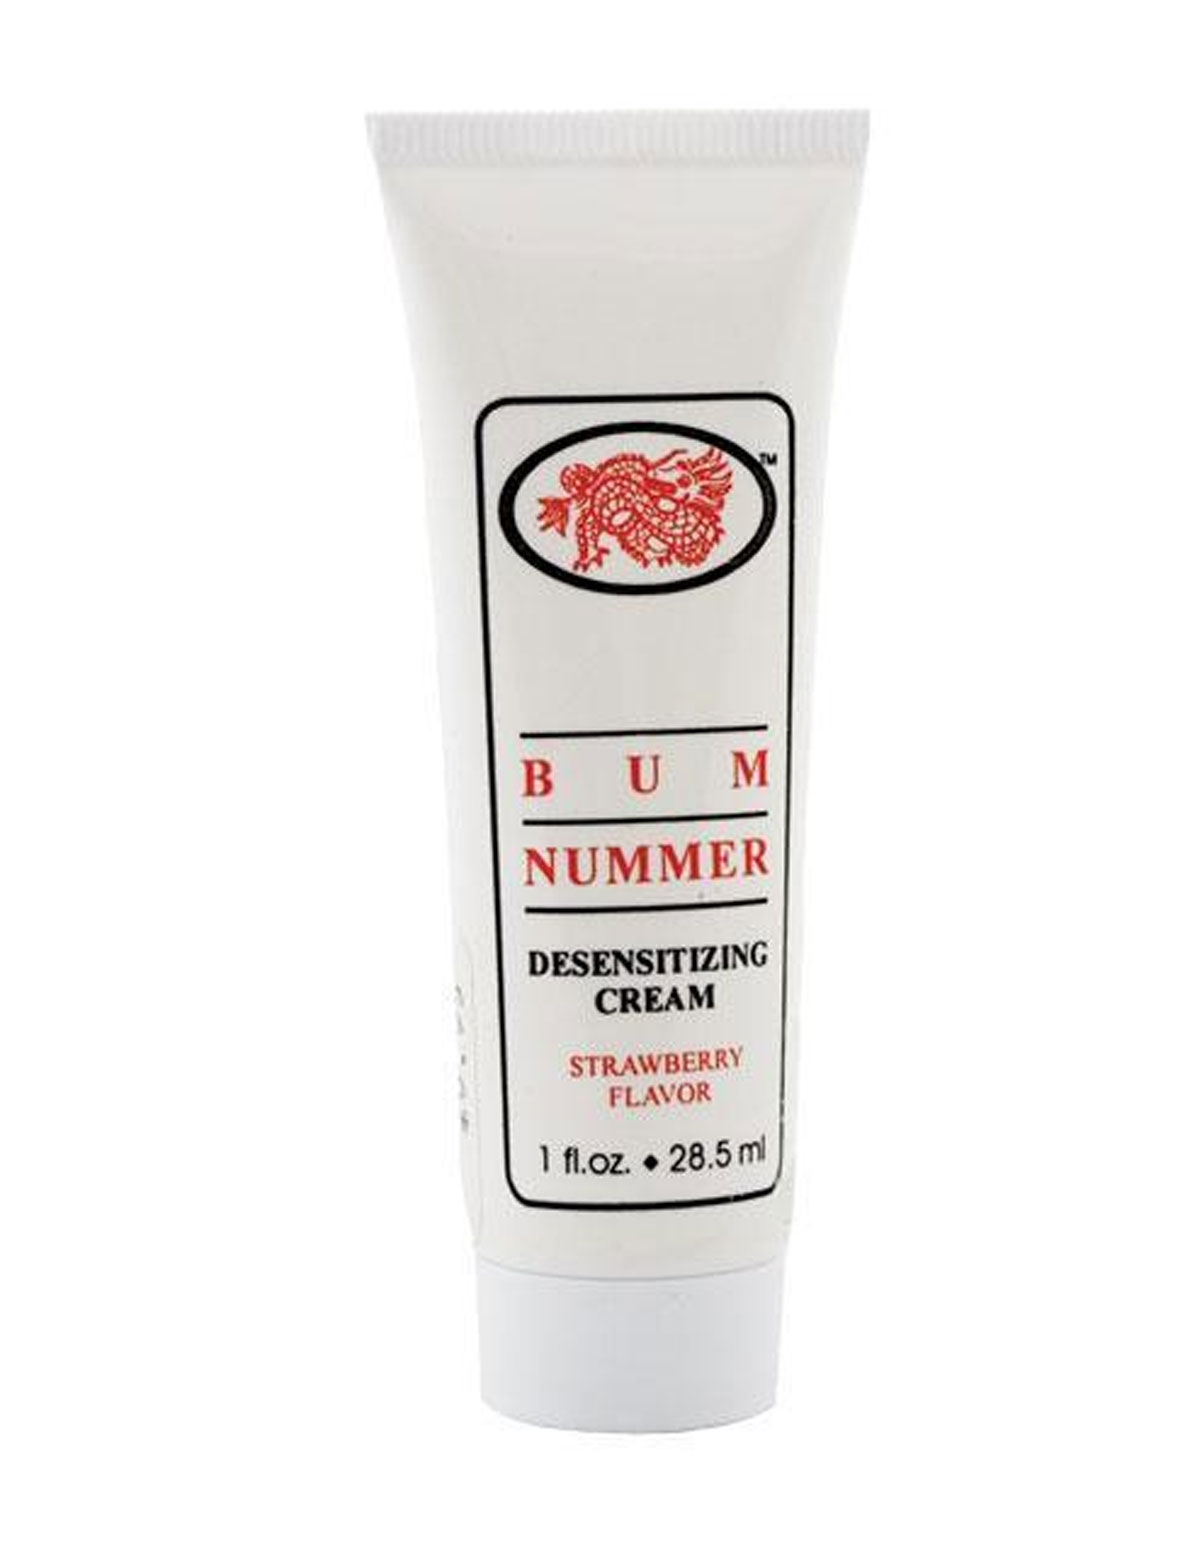 Bum Nummer Desensitizing Cream